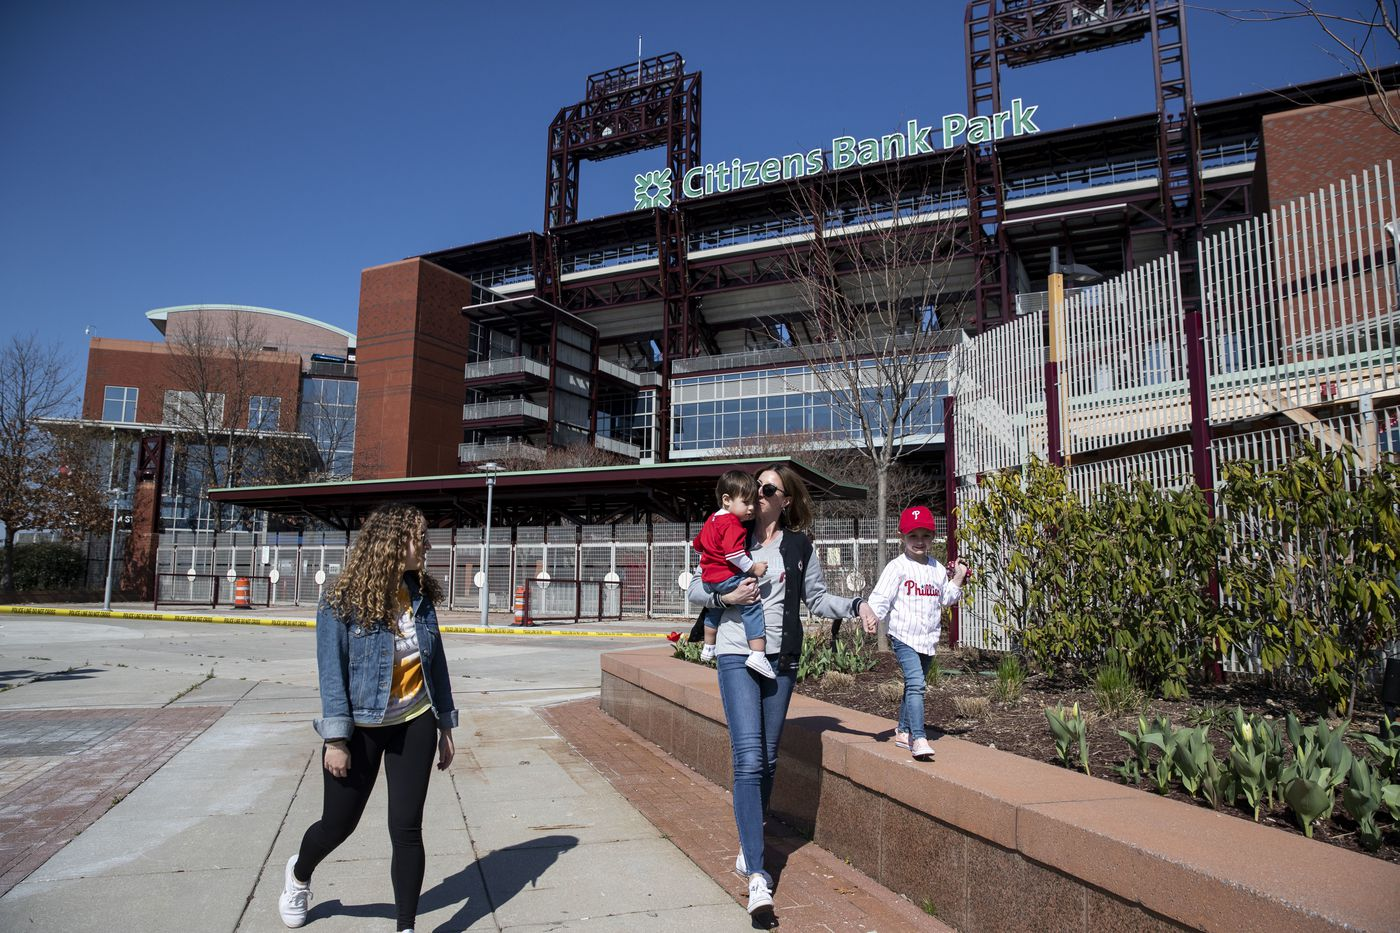 """Regan Lamb, from Northeast Philly, John Sosalski, 16 months, Rachel Sosalski, from Fishtown, and Ava Sosalski, 3, walk outside of Citizens Bank Park on what was supposed to be the Philadelphia Phillies Opening Day on Thursday. """"We would be here as a family if it weren't for this situation,"""" Sosalski said. On March 16, the Major League Baseball announced that the start of the season would be delayed following CDC guidelines to slow the spread of the coronavirus."""